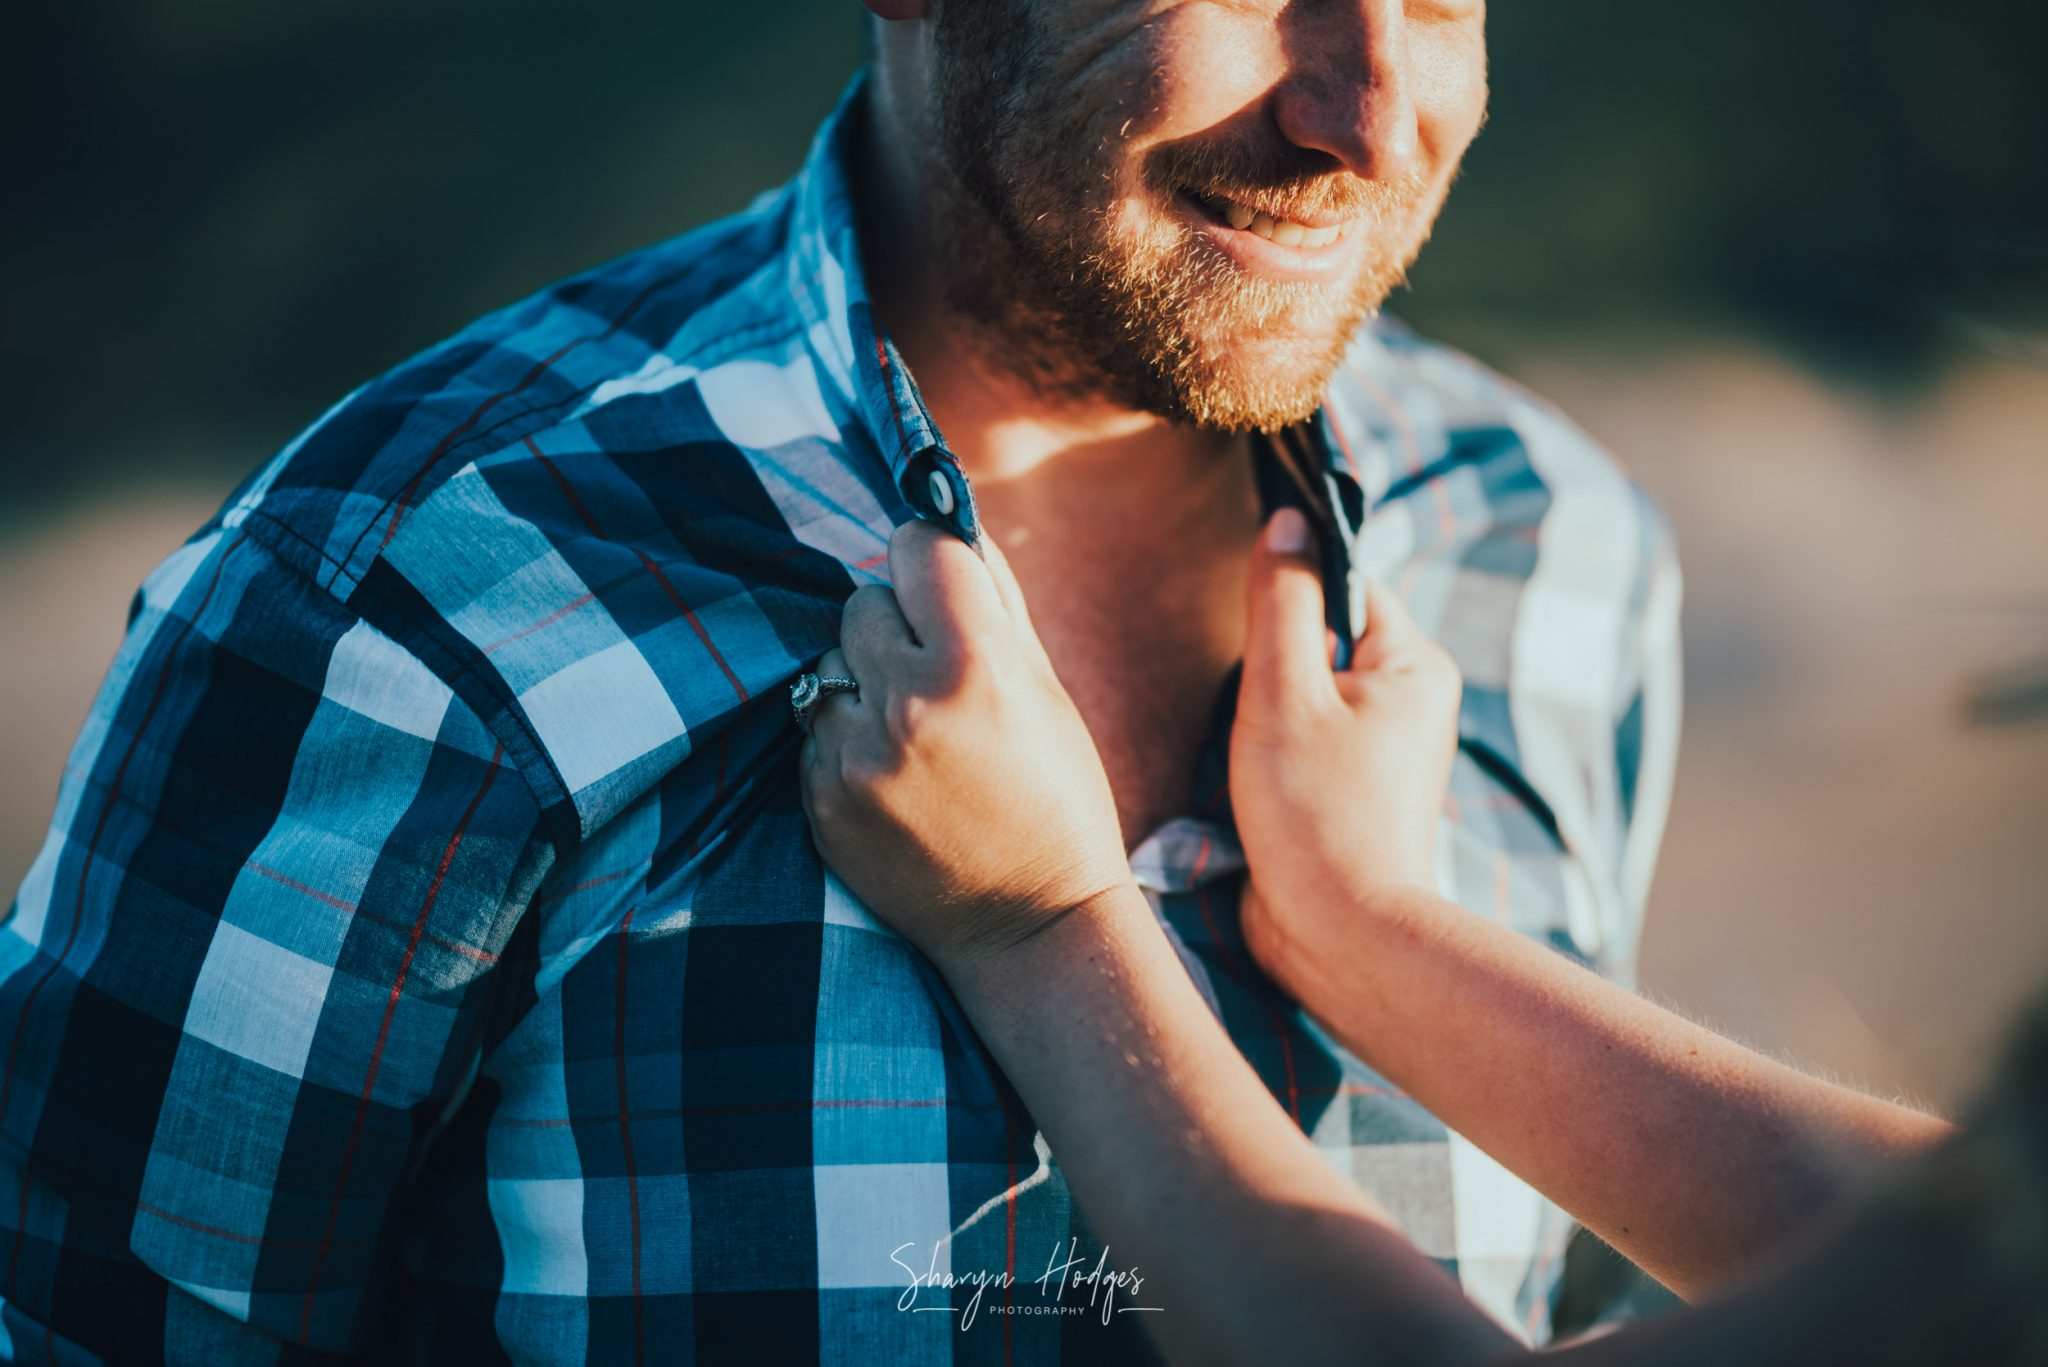 garden route photographer, engagement shoot, Robberg nature reserve, Plettenberg bay photographer, Sharyn Hodges, Robberg nature reserve